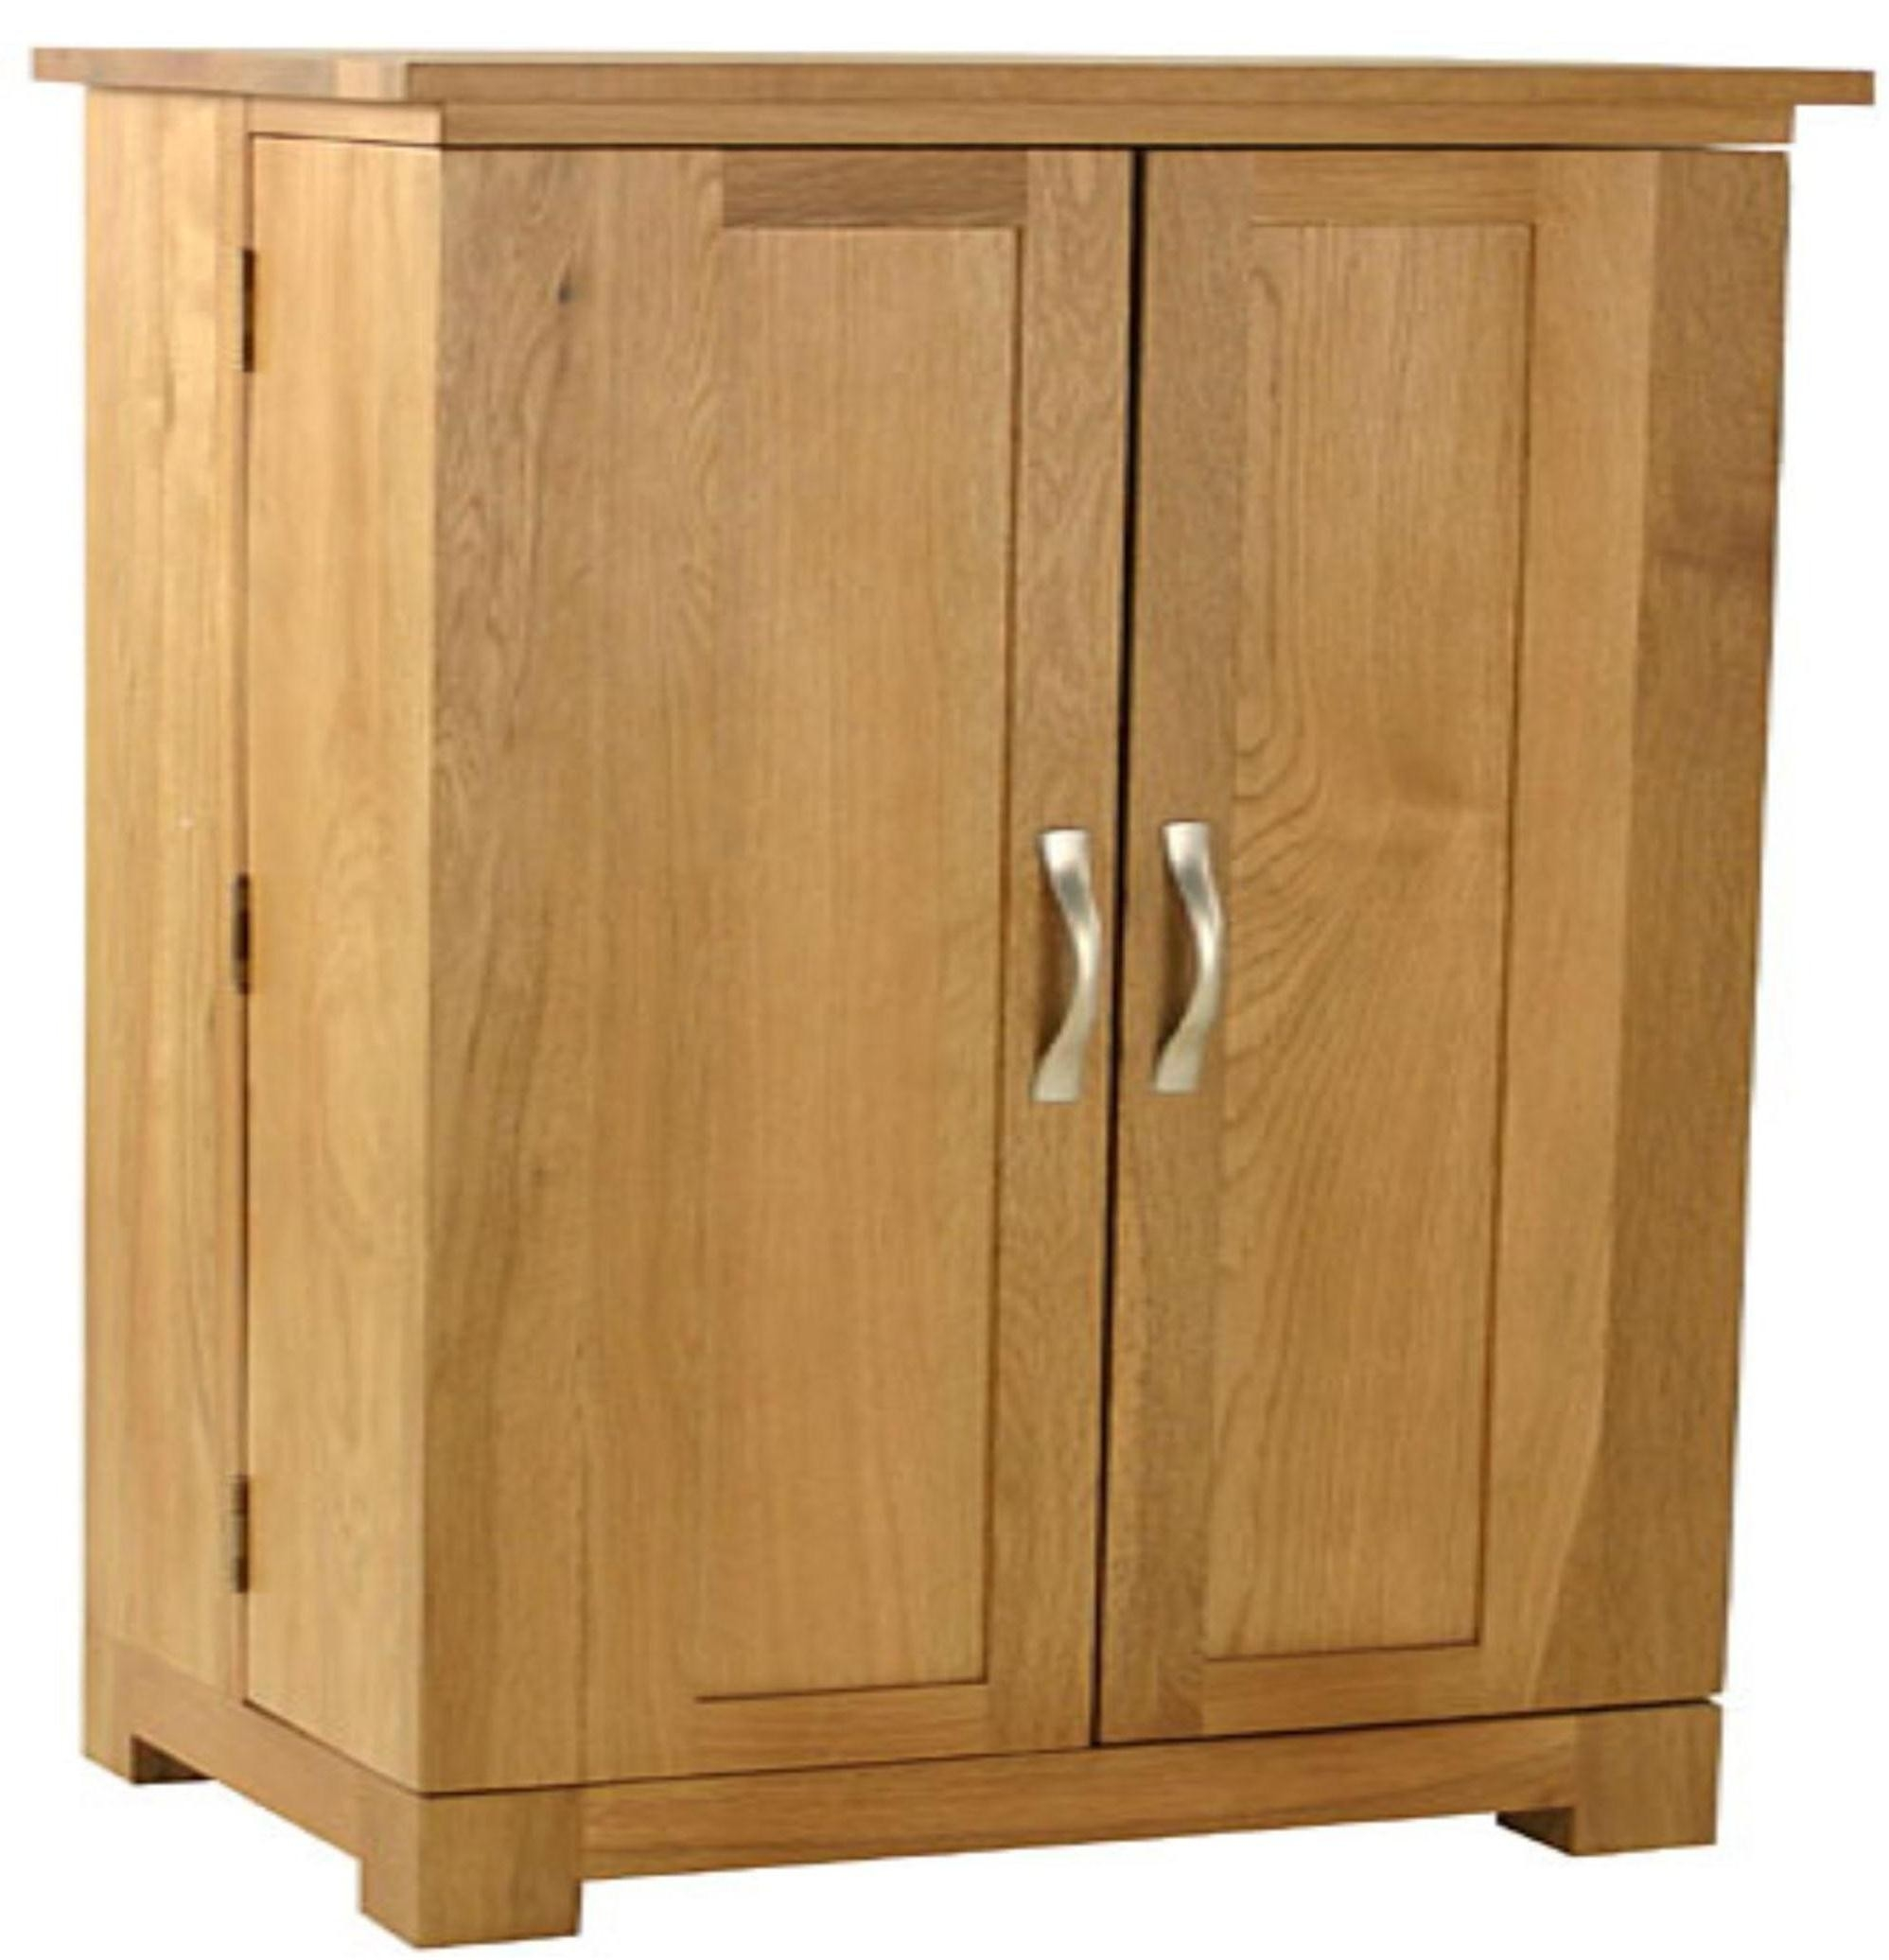 Short Wooden Storage Cabinets